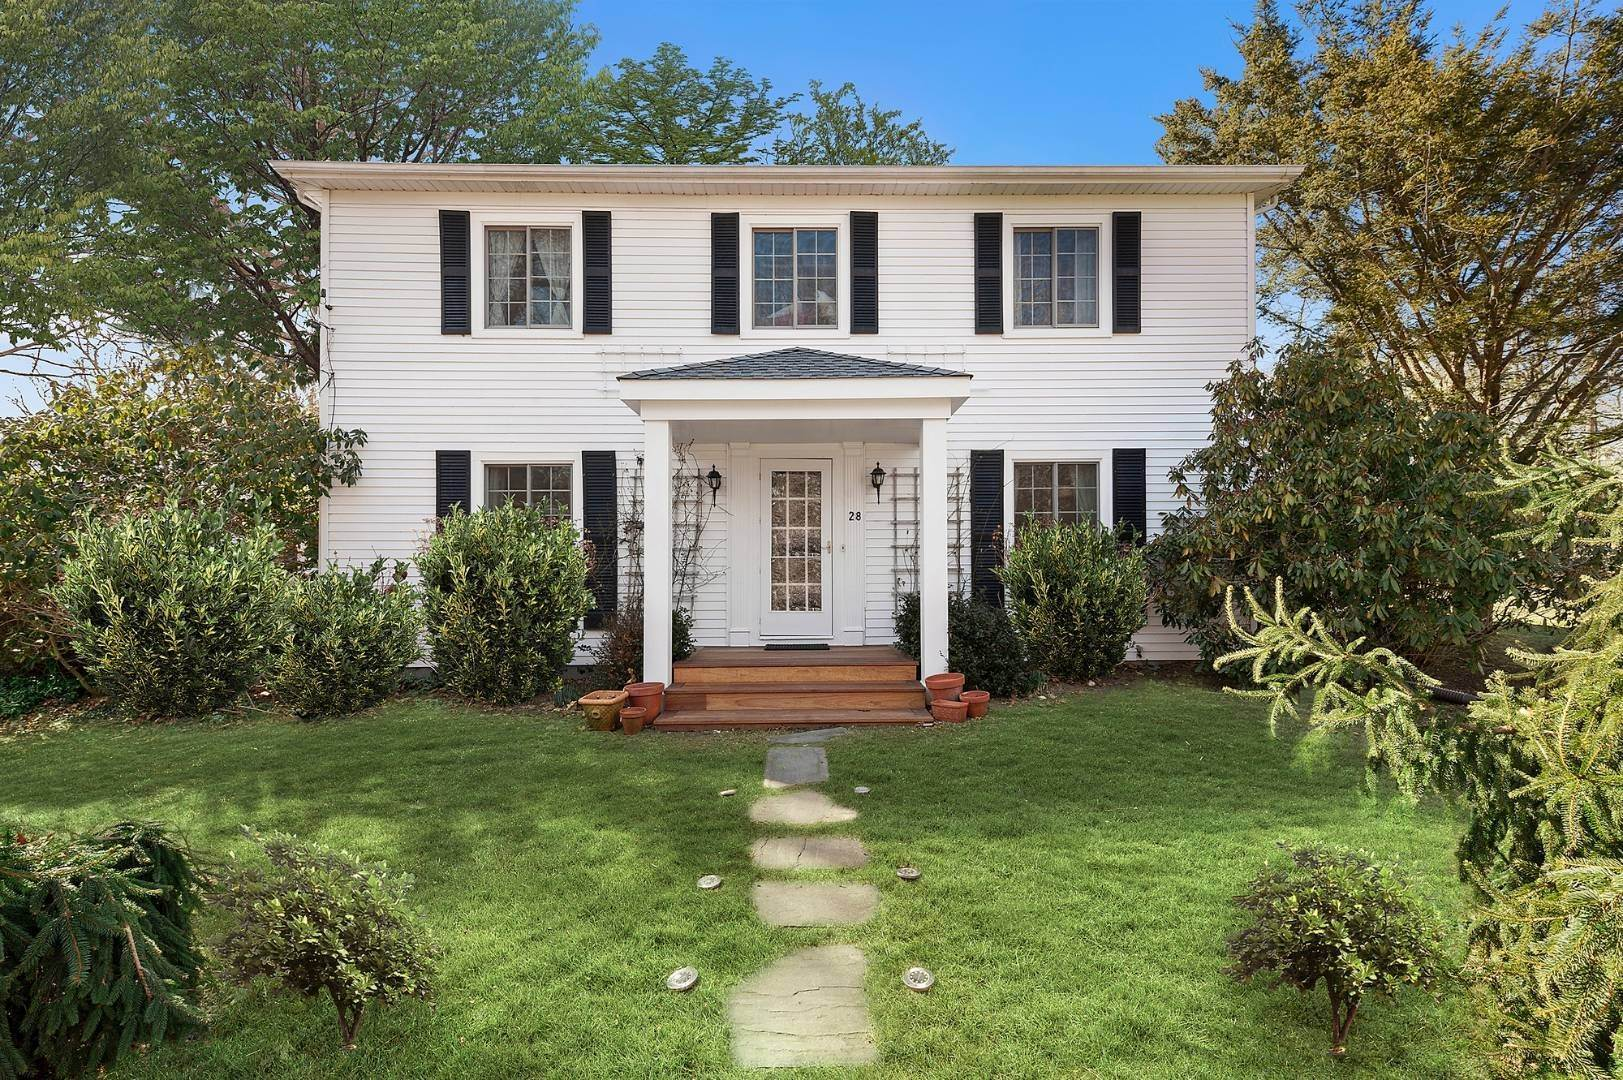 Single Family Home for Sale at Location Location Location 28 Bay View Drive North, Sag Harbor, NY 11963